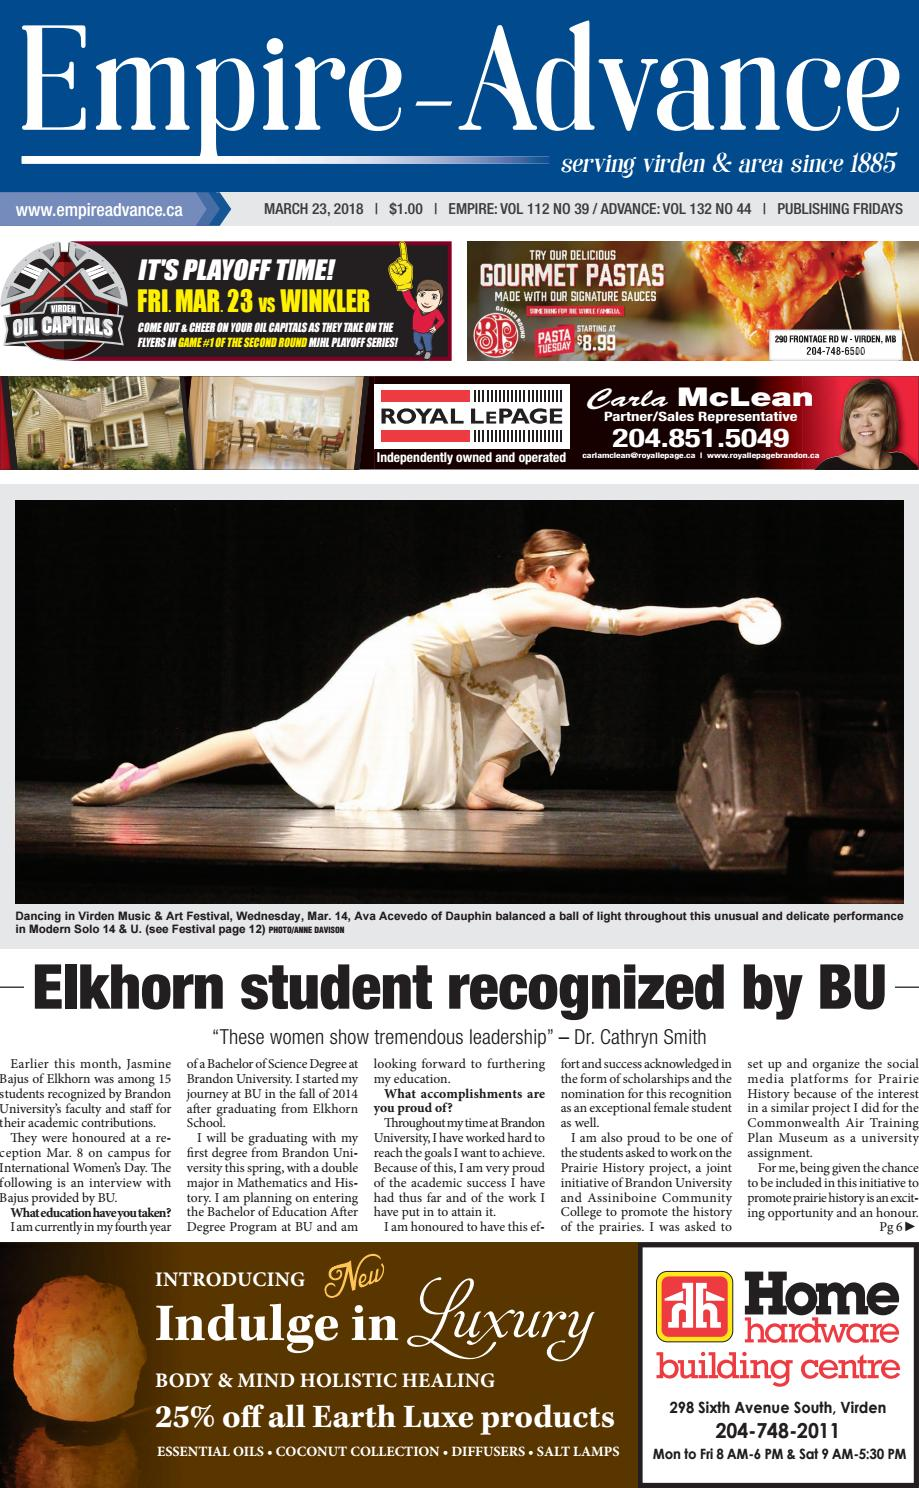 March 23 2018 by Virden-Empire-Advance - issuu